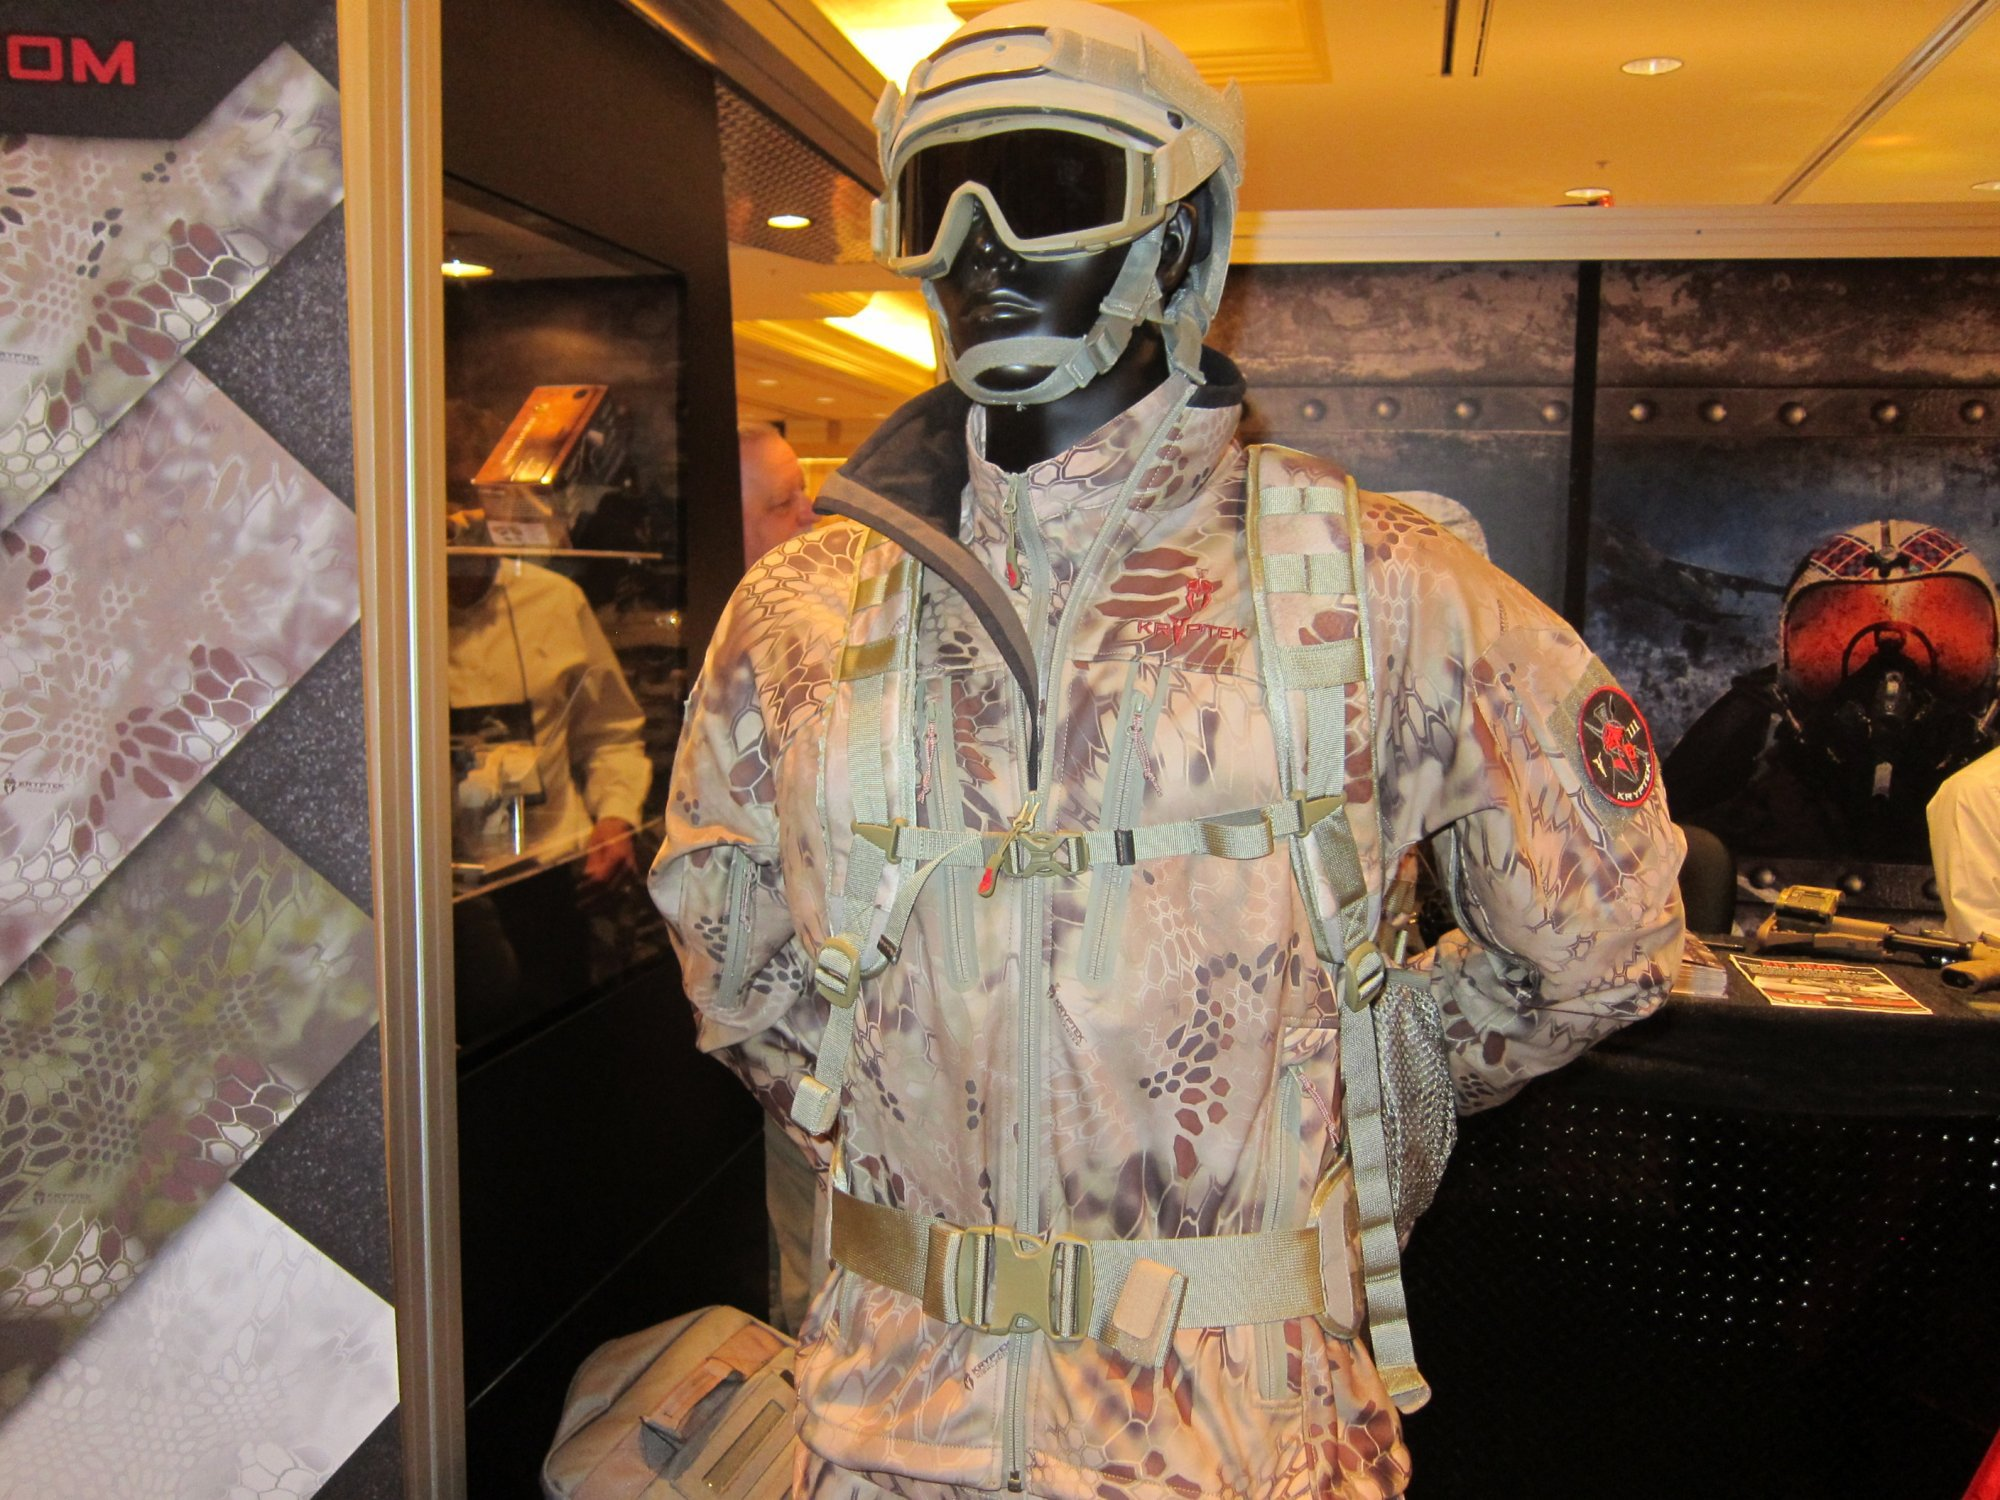 Kryptek LEAF/Camo Technologies 3-Dimensional (3-D)/Multi-Directional Biomimetic Military Combat Camouflage (Camo) Patterns at SHOT Show 2012: Is the Army's Future Soldier Going Reptilian? (Video!)